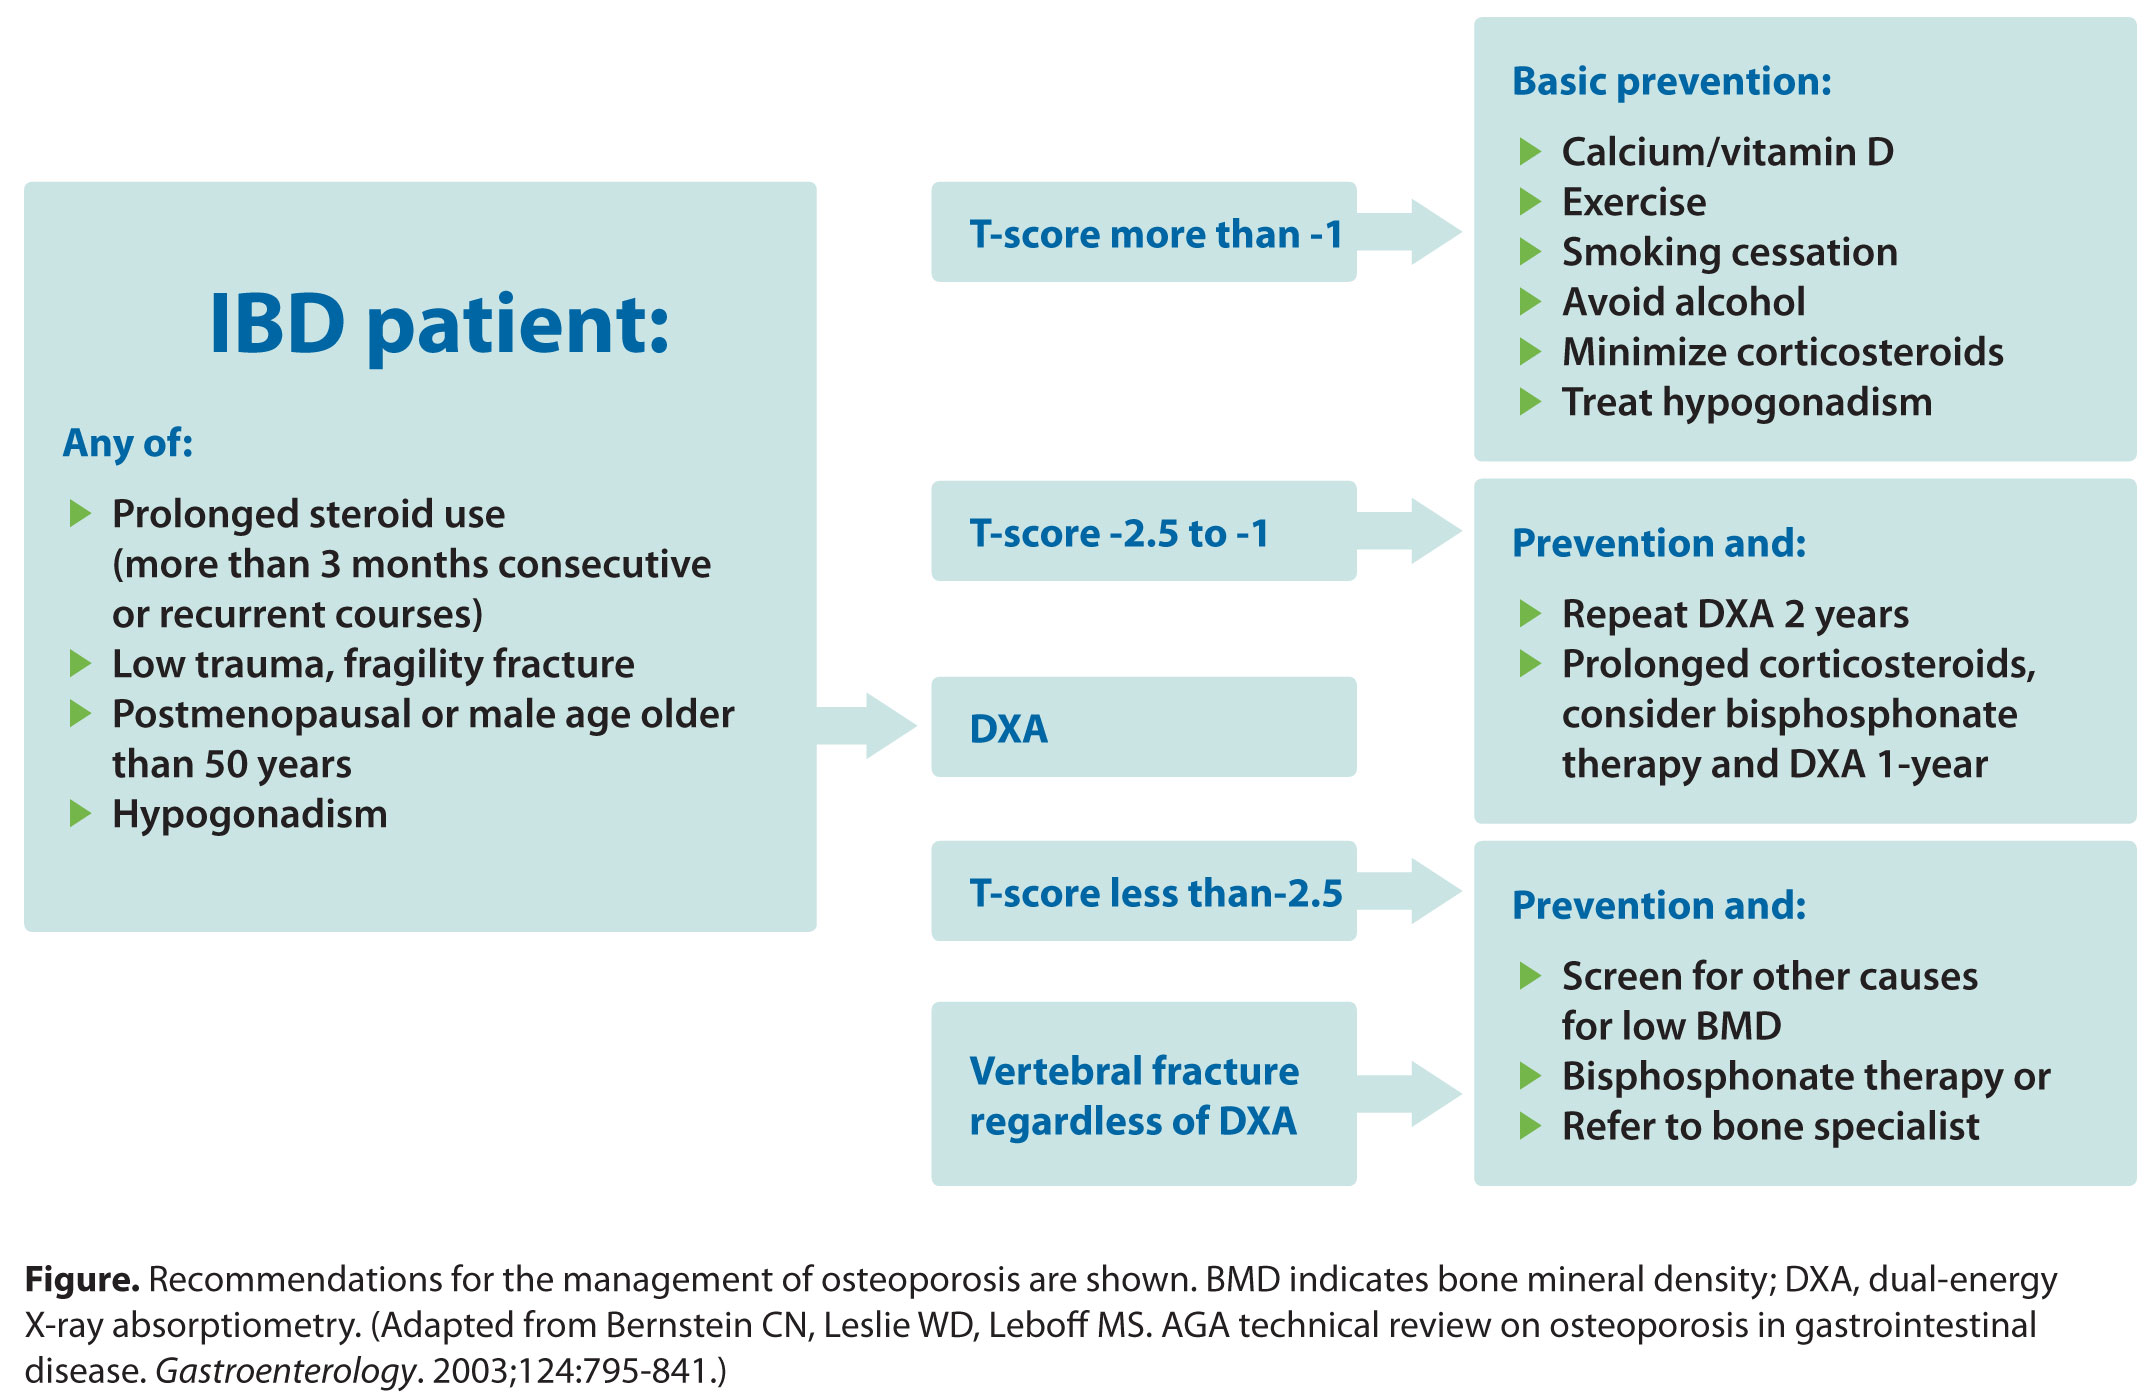 osteoporosis and inflammatory bowel disease, Skeleton